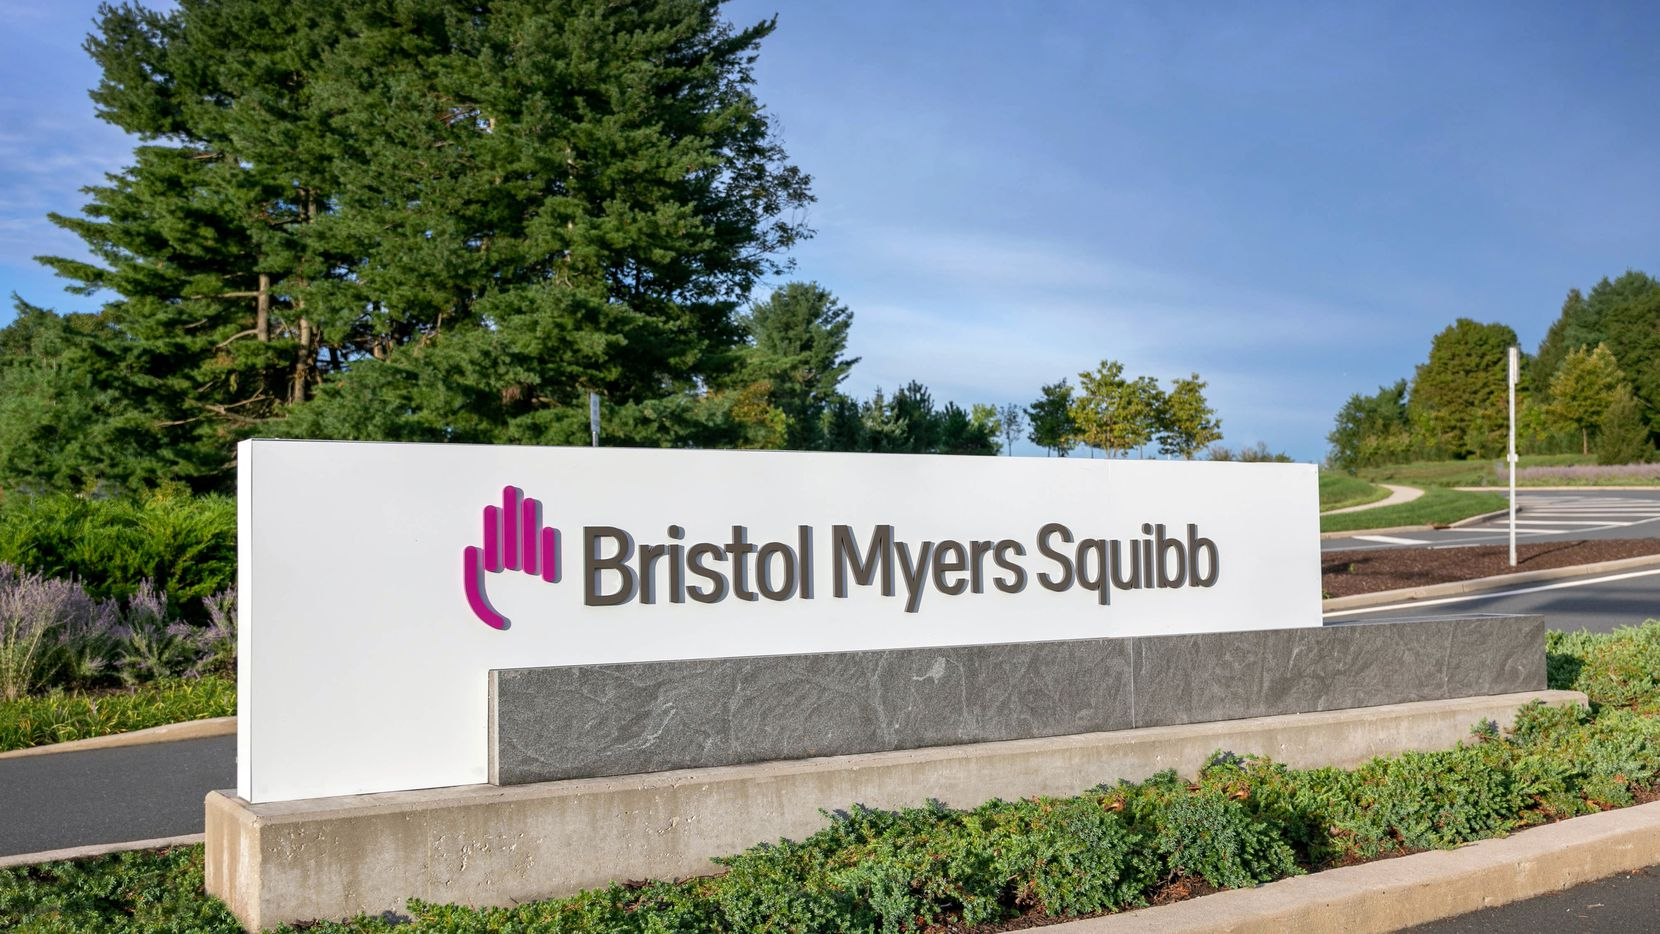 Wall Street analysts think Bristol Myers Squibb will deliver average annual earnings growth of more than 20% over the next five years.